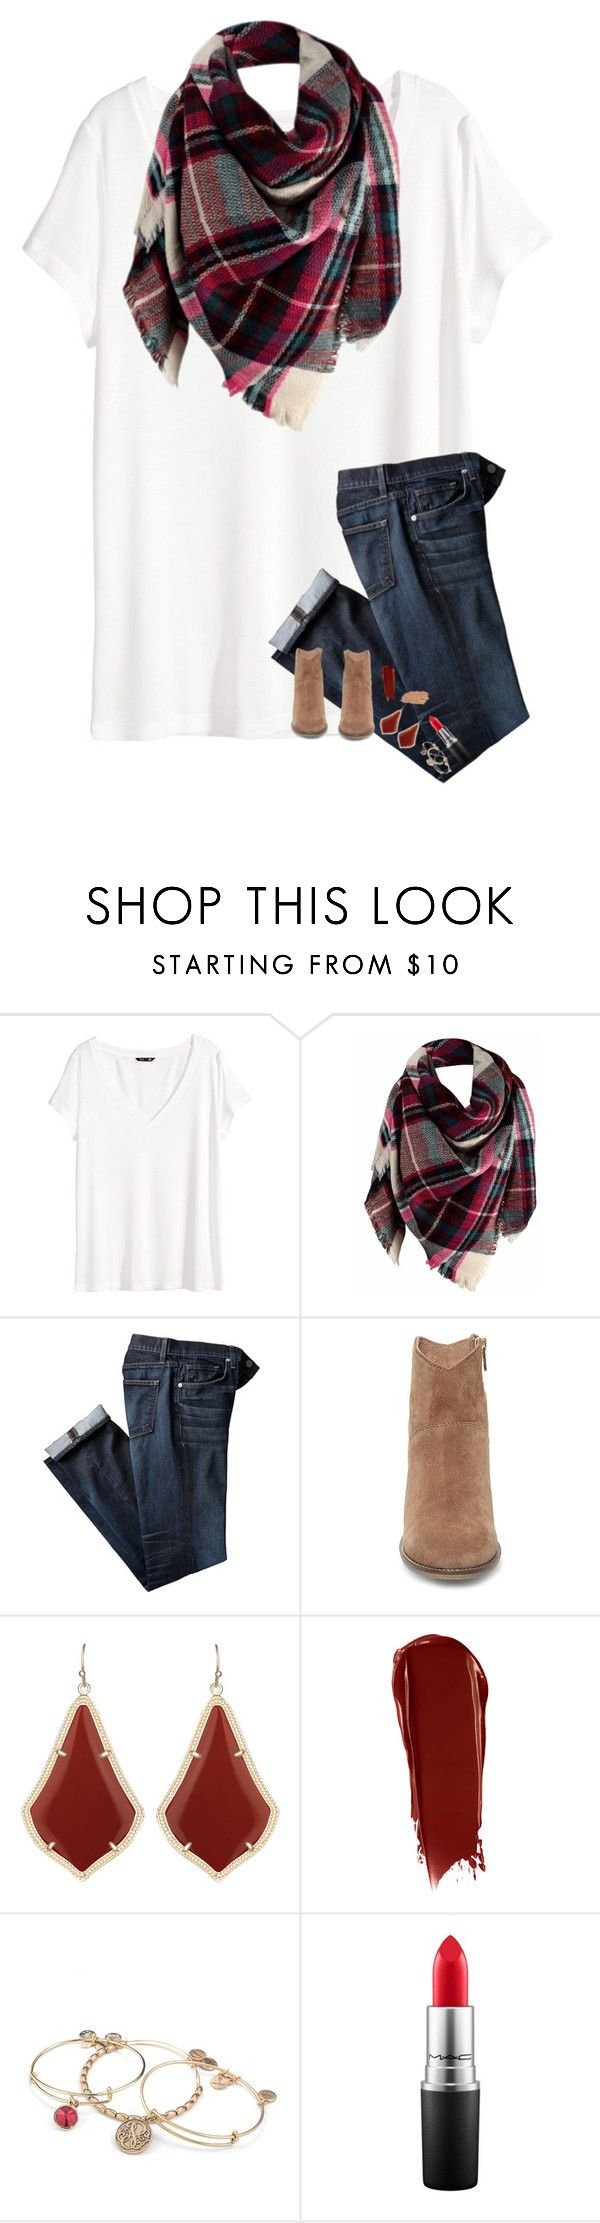 """Blanket Scarf!!!"" by kat-attack ❤ liked on Polyvore featuring H&M, Steve Madden, Kendra Scott, NARS Cosmetics, Alex and Ani, MAC Cosmetics and Jane Iredale"